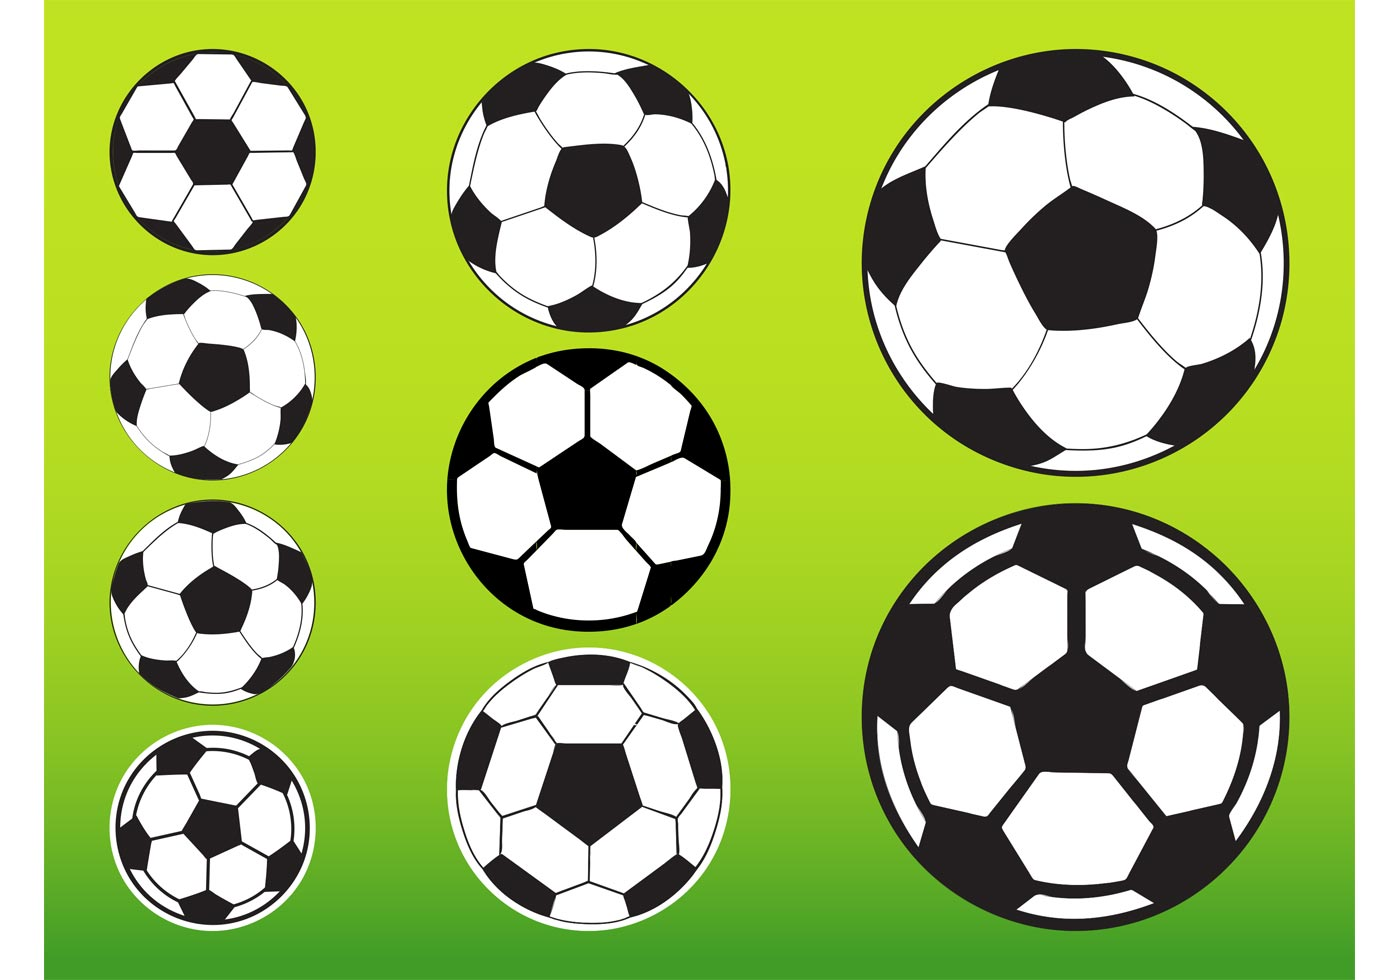 Soccer balls pack download free vector art stock - Ball image download ...